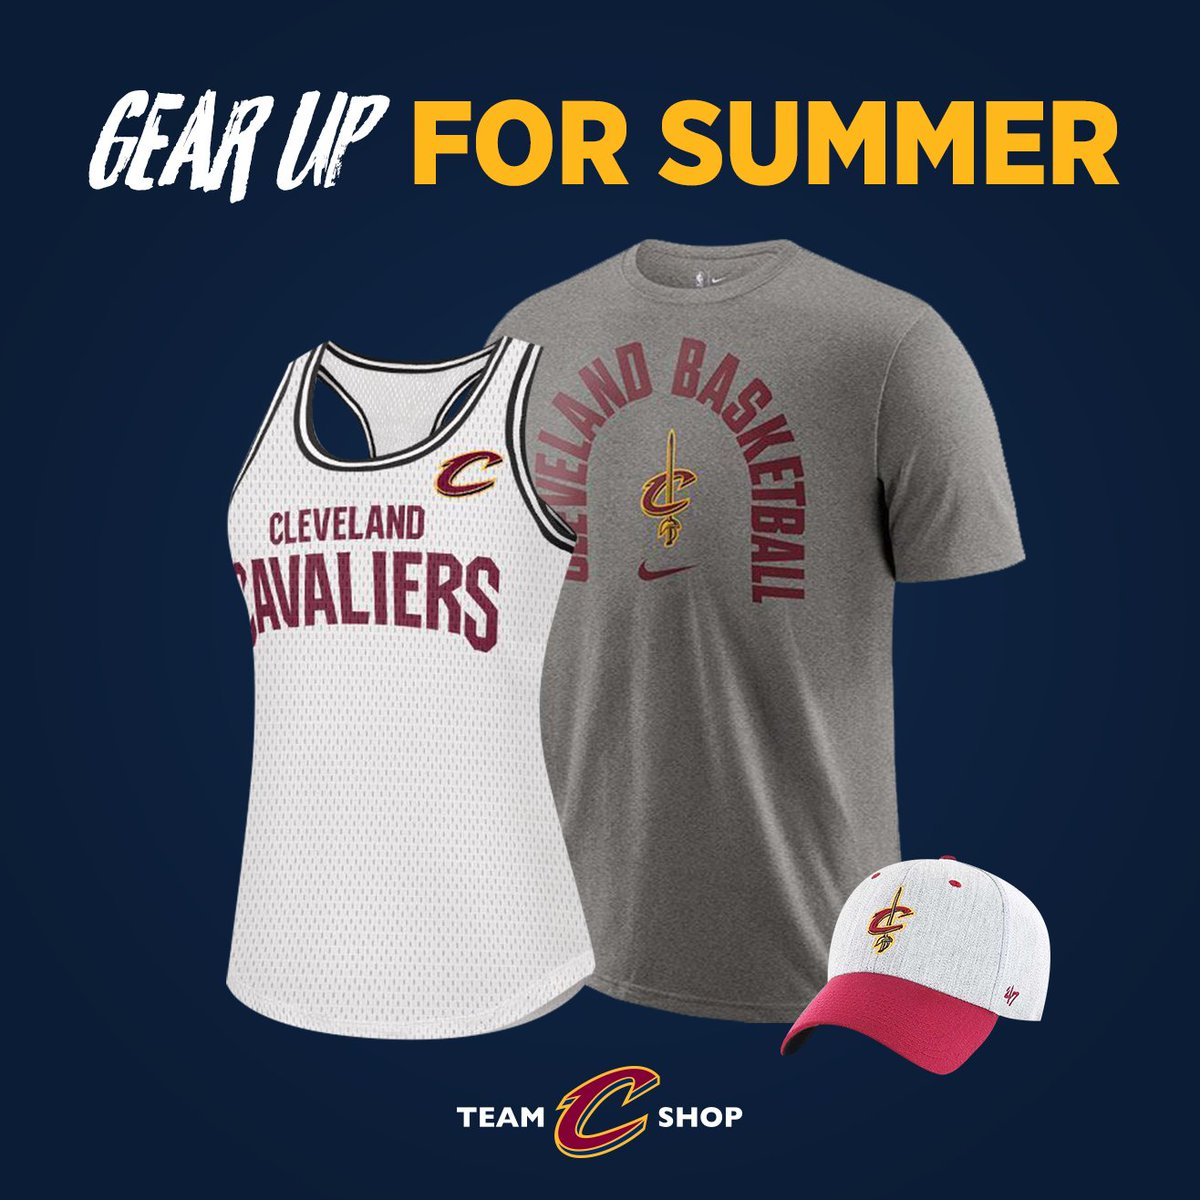 47a1f5863108 Cavaliers Team Shop on Twitter